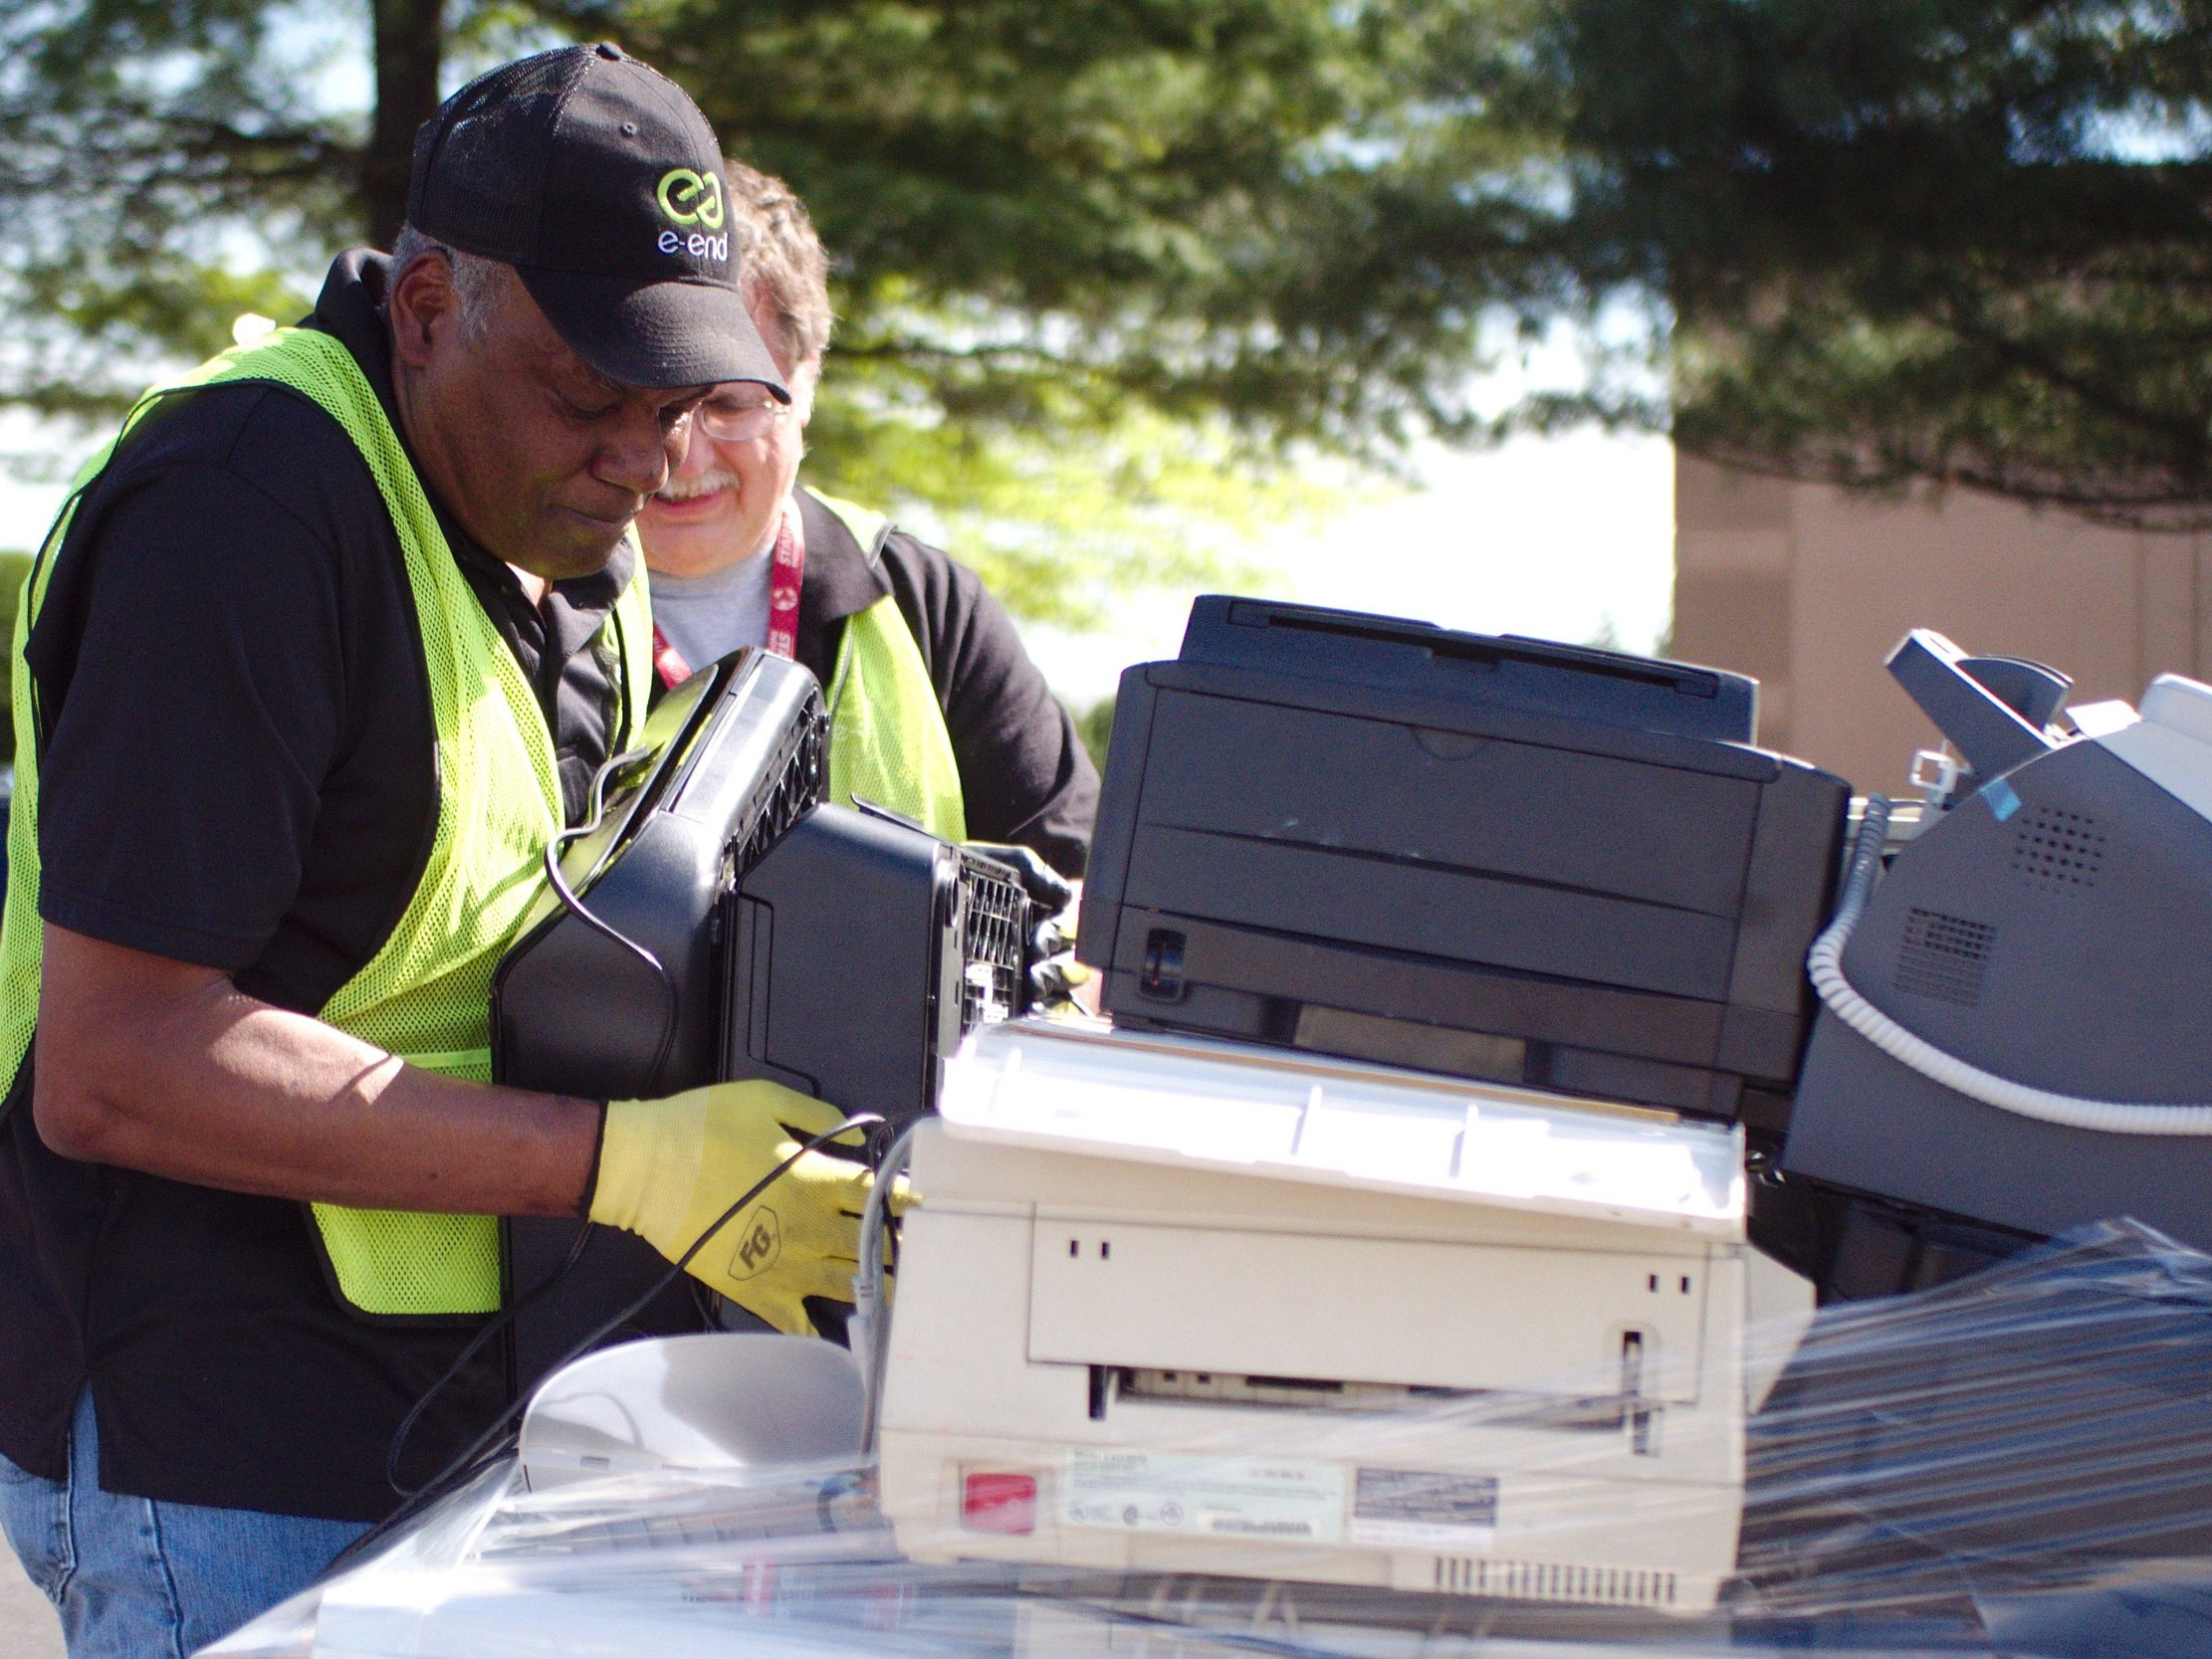 e-End employees stacking small printers during an electronics recycling collection event.